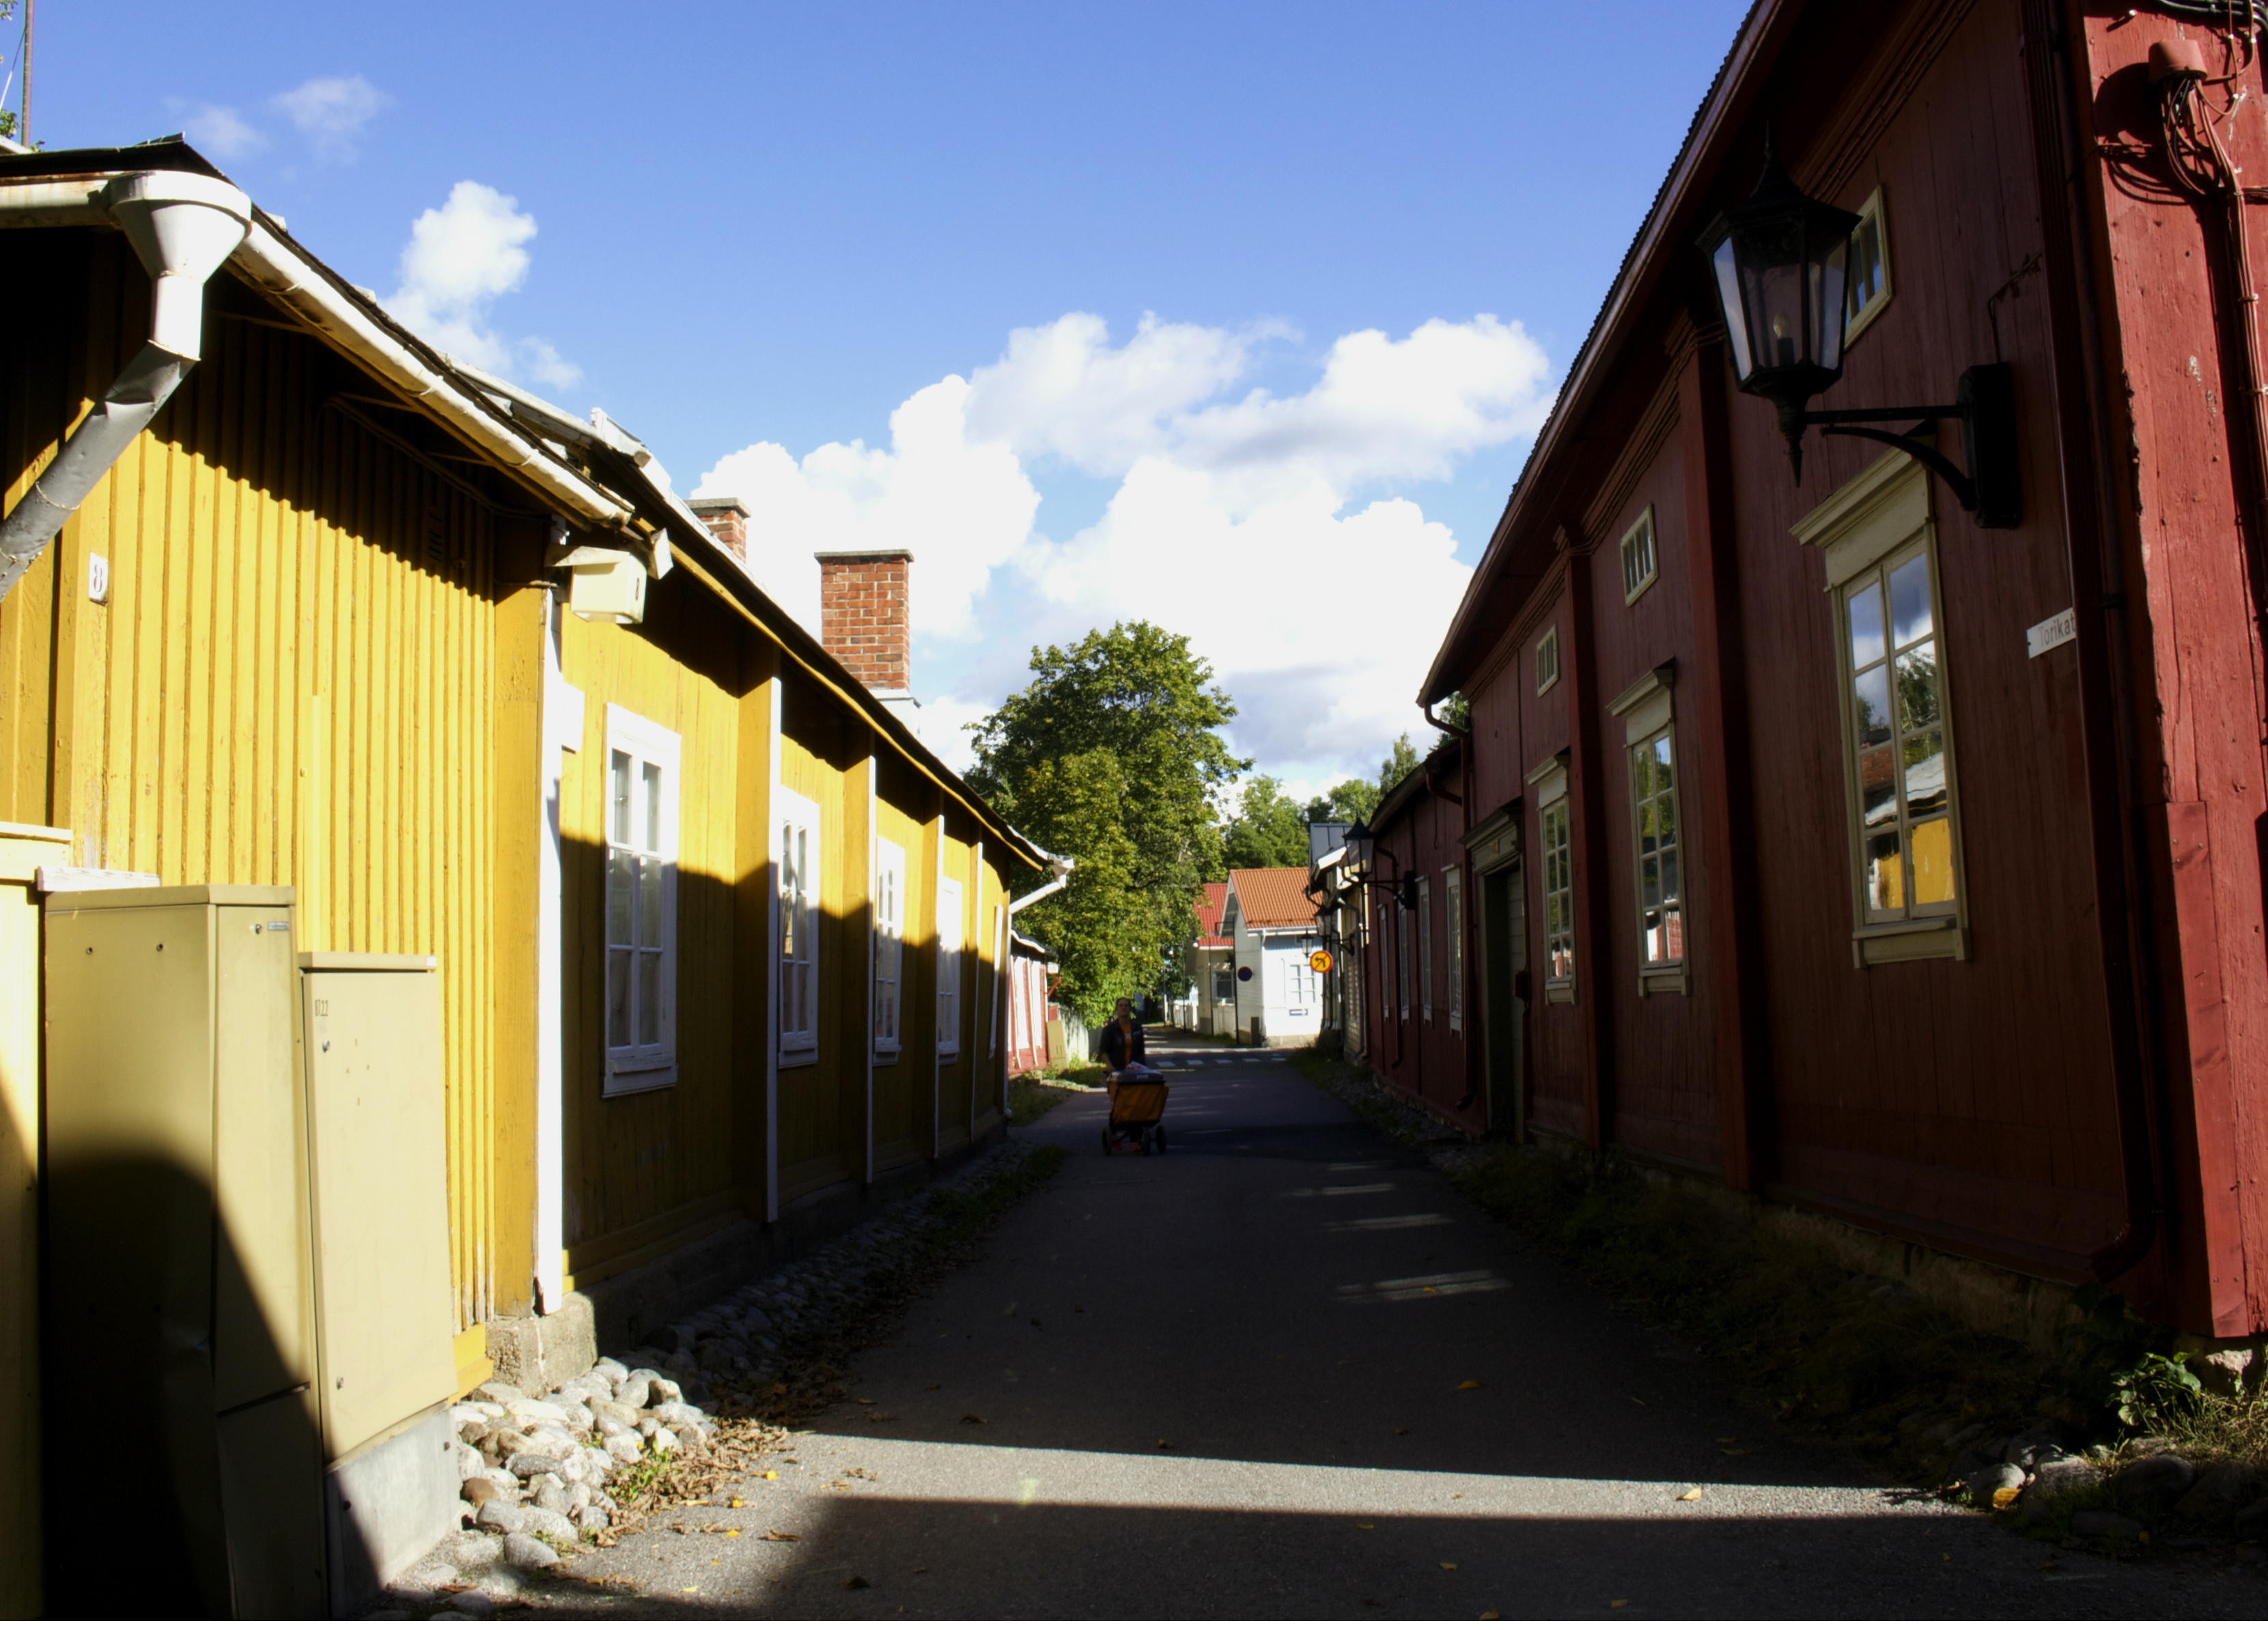 Leaning walls of Naantali.